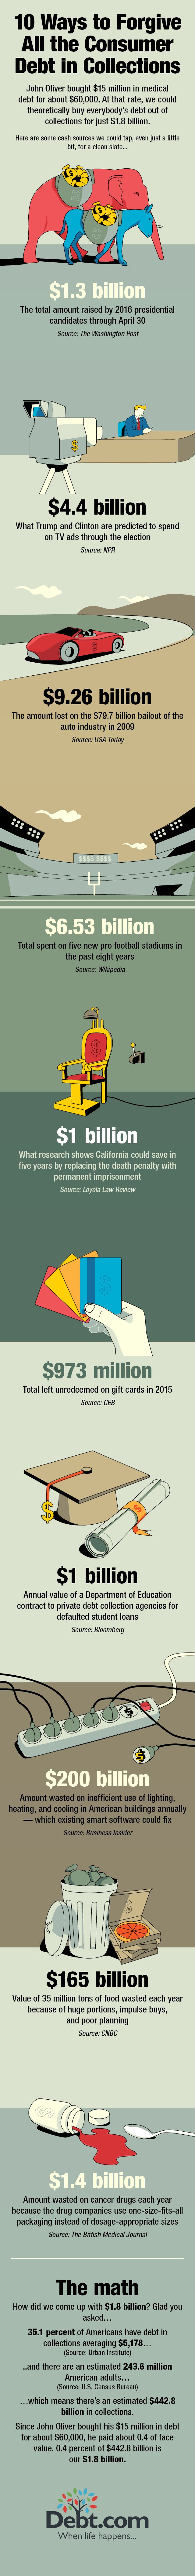 An infographic describing what could be done with all the money tied up in federal student loan debt